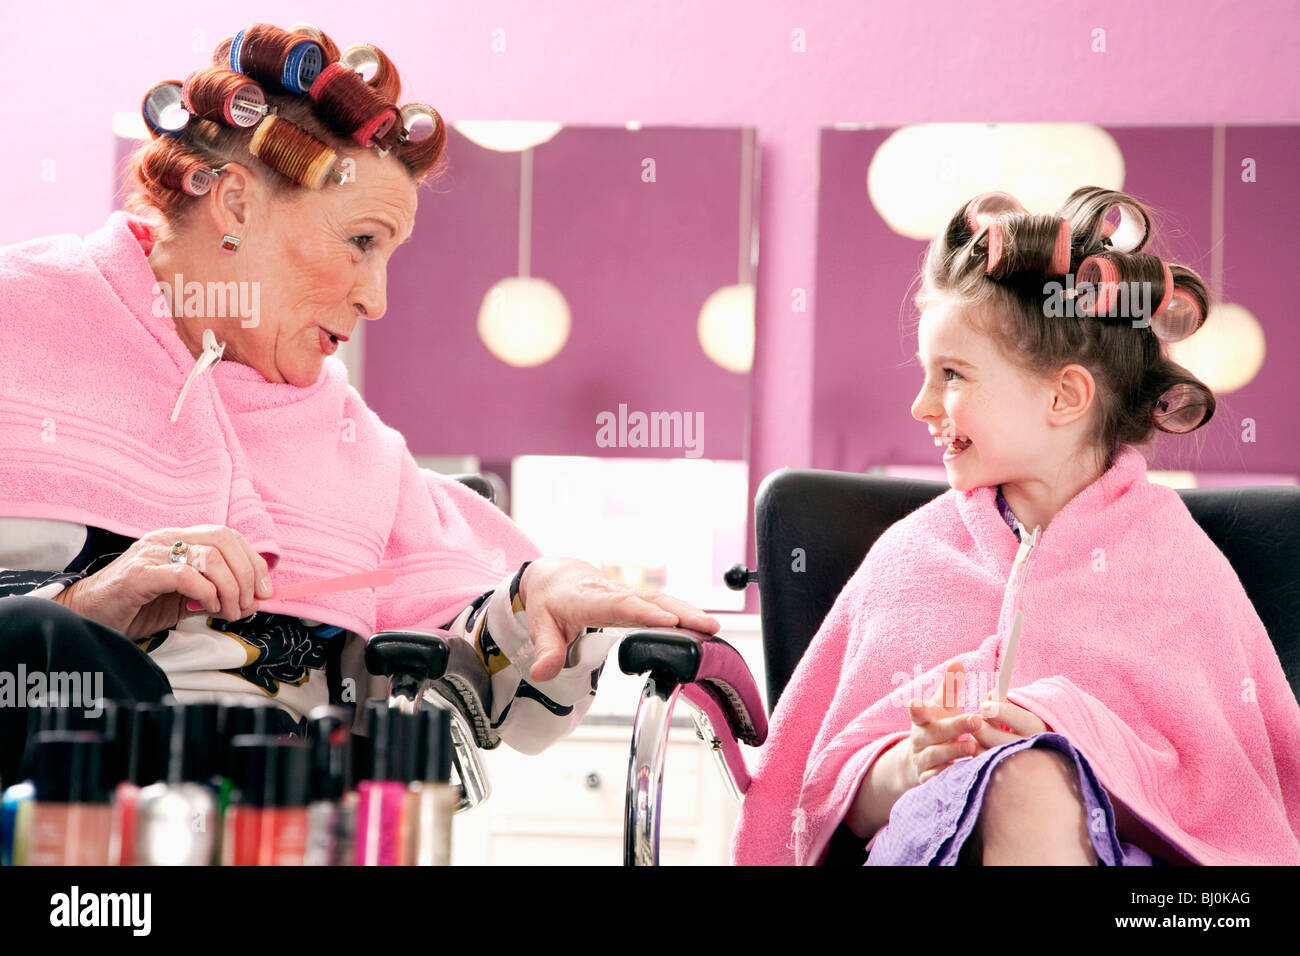 Precocious stock photos precocious stock images alamy for Spa uniform norge